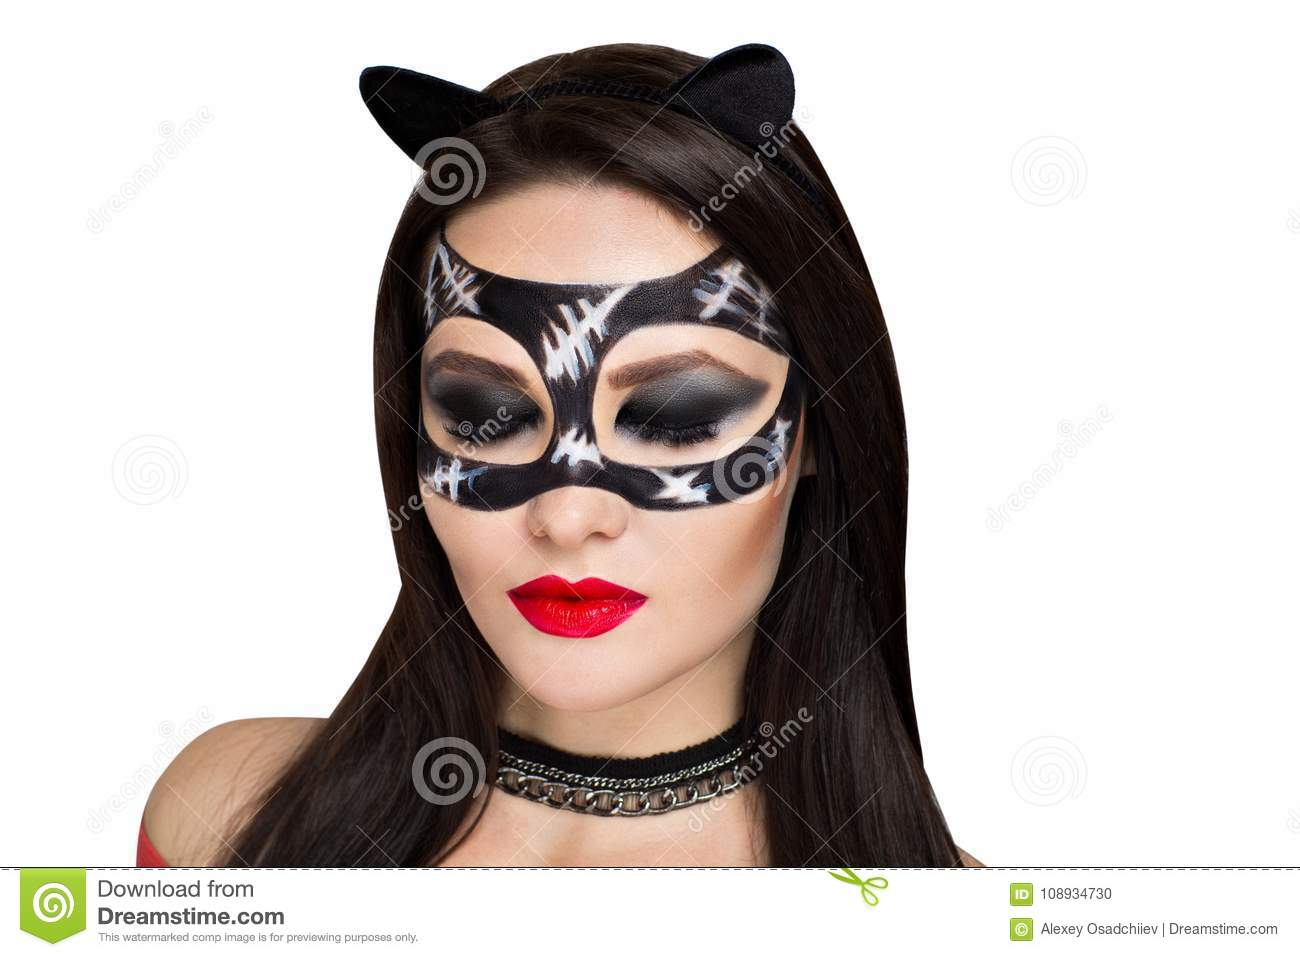 Young beautiful bright showy girl lady model cat. Fairy tale future party  cosplay club. new makeup flawless face dark eyes cheeks eyebrows cat lips 8eac57e54f5